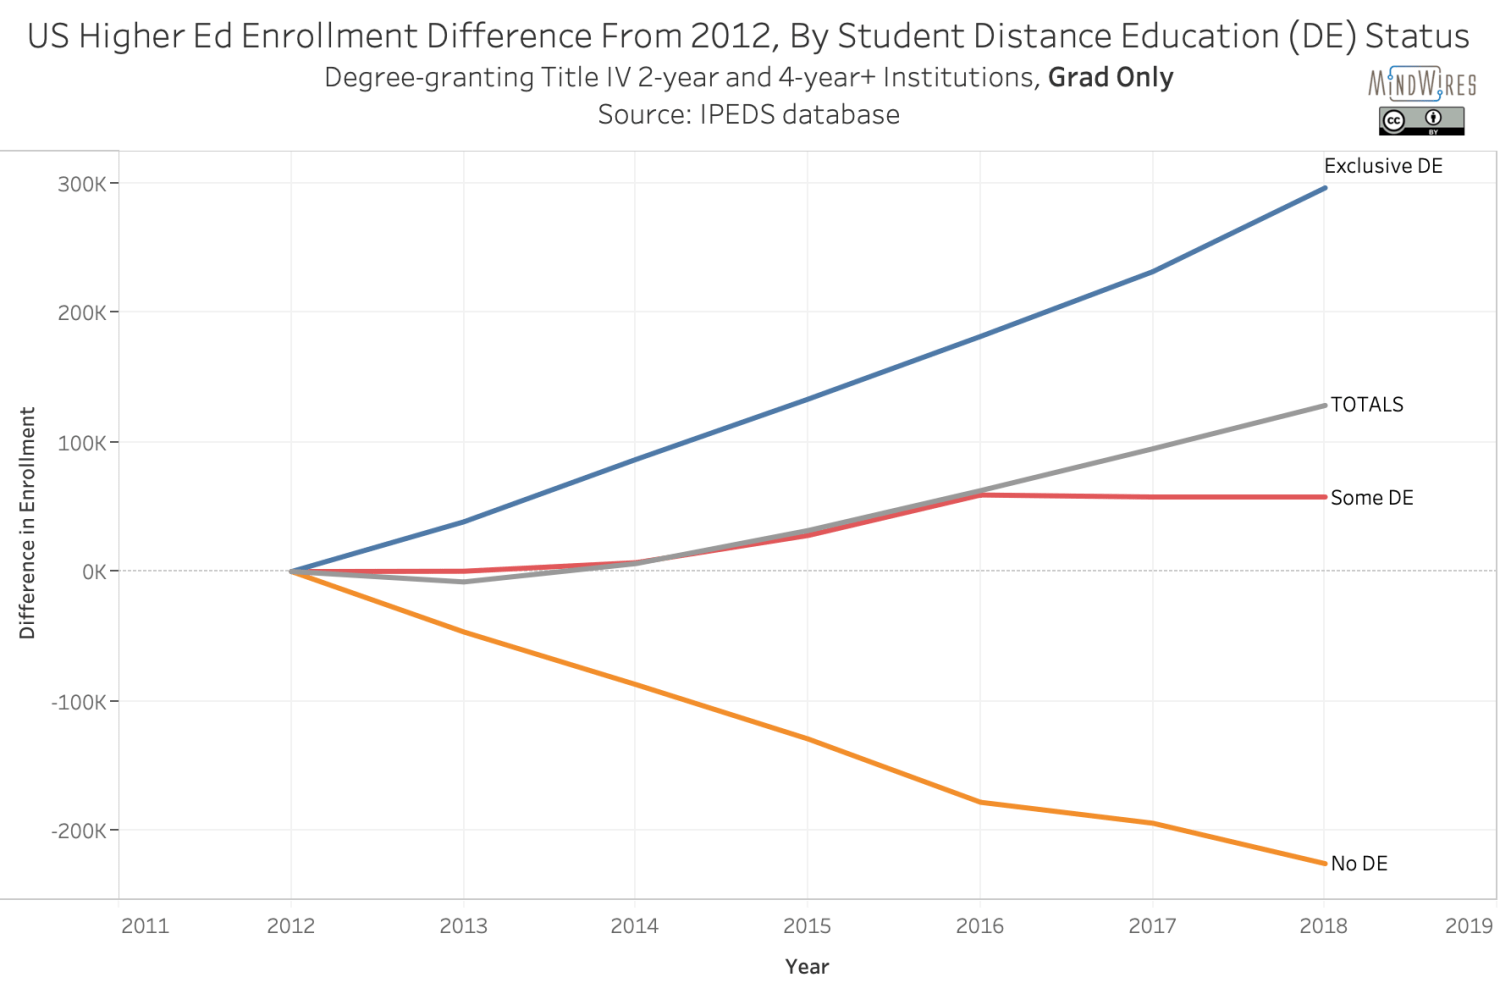 US Higher Ed Enrollment Difference From 2012, By Student Distance Education (DE) Status - grad only